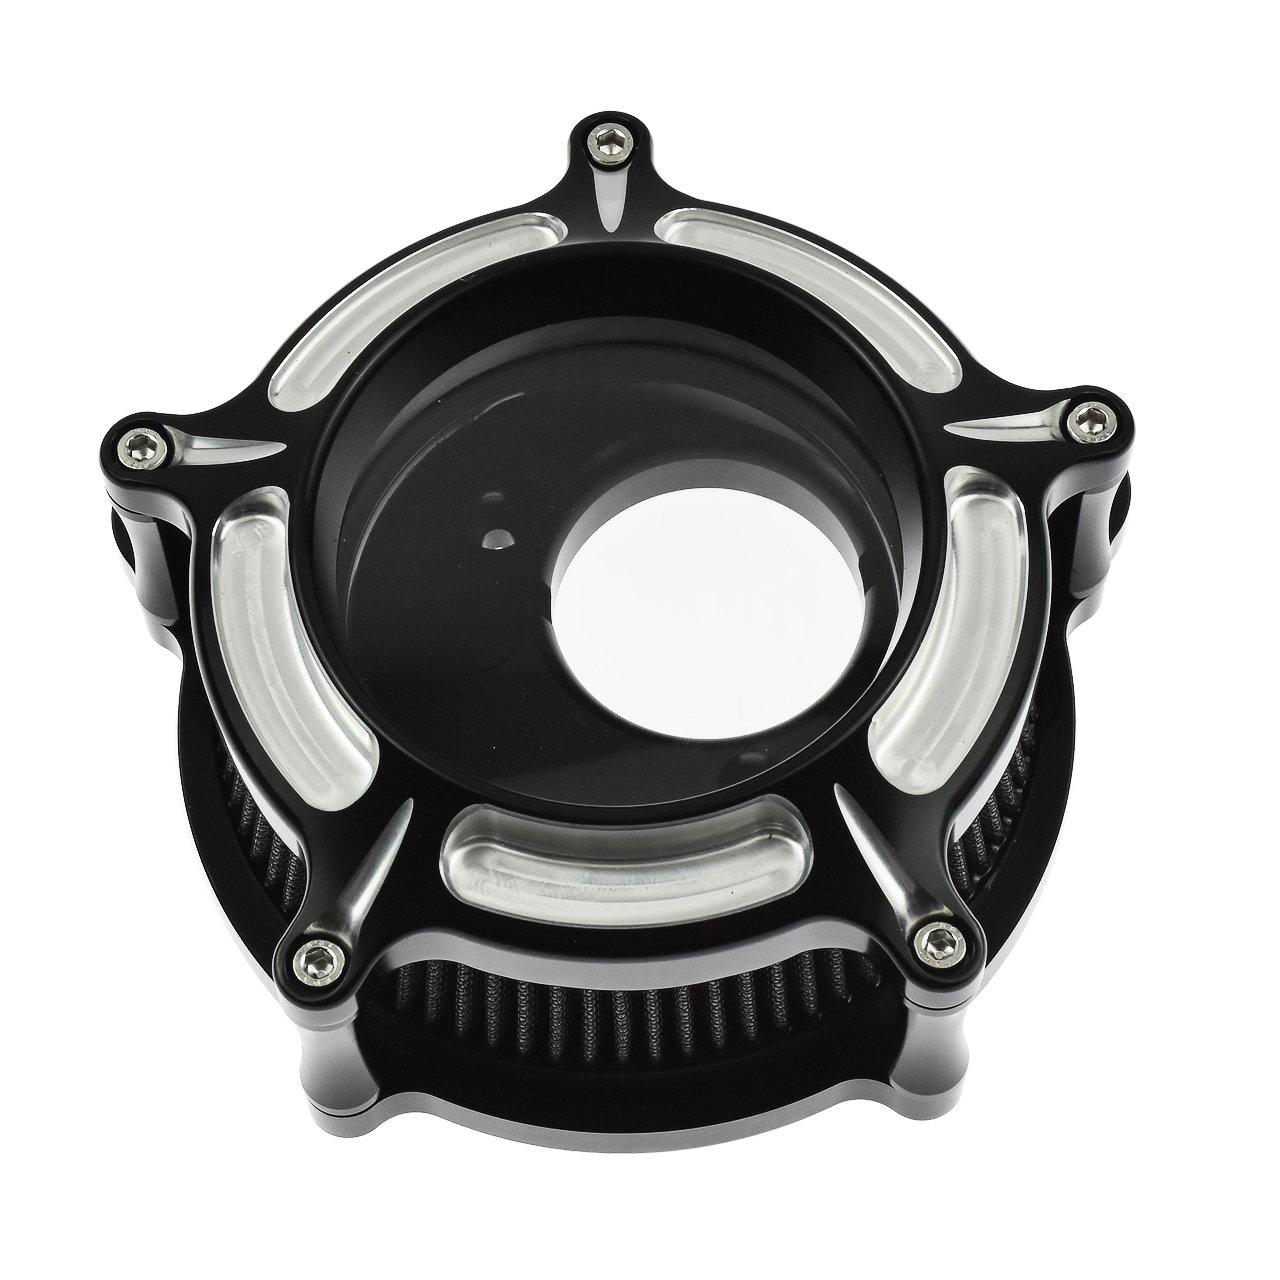 Rebacker CNC Perspective Air Filter Air Intake Cleaner Intake Kit for Harley Dyna Touring 2000-2017 Softail 2000-2015